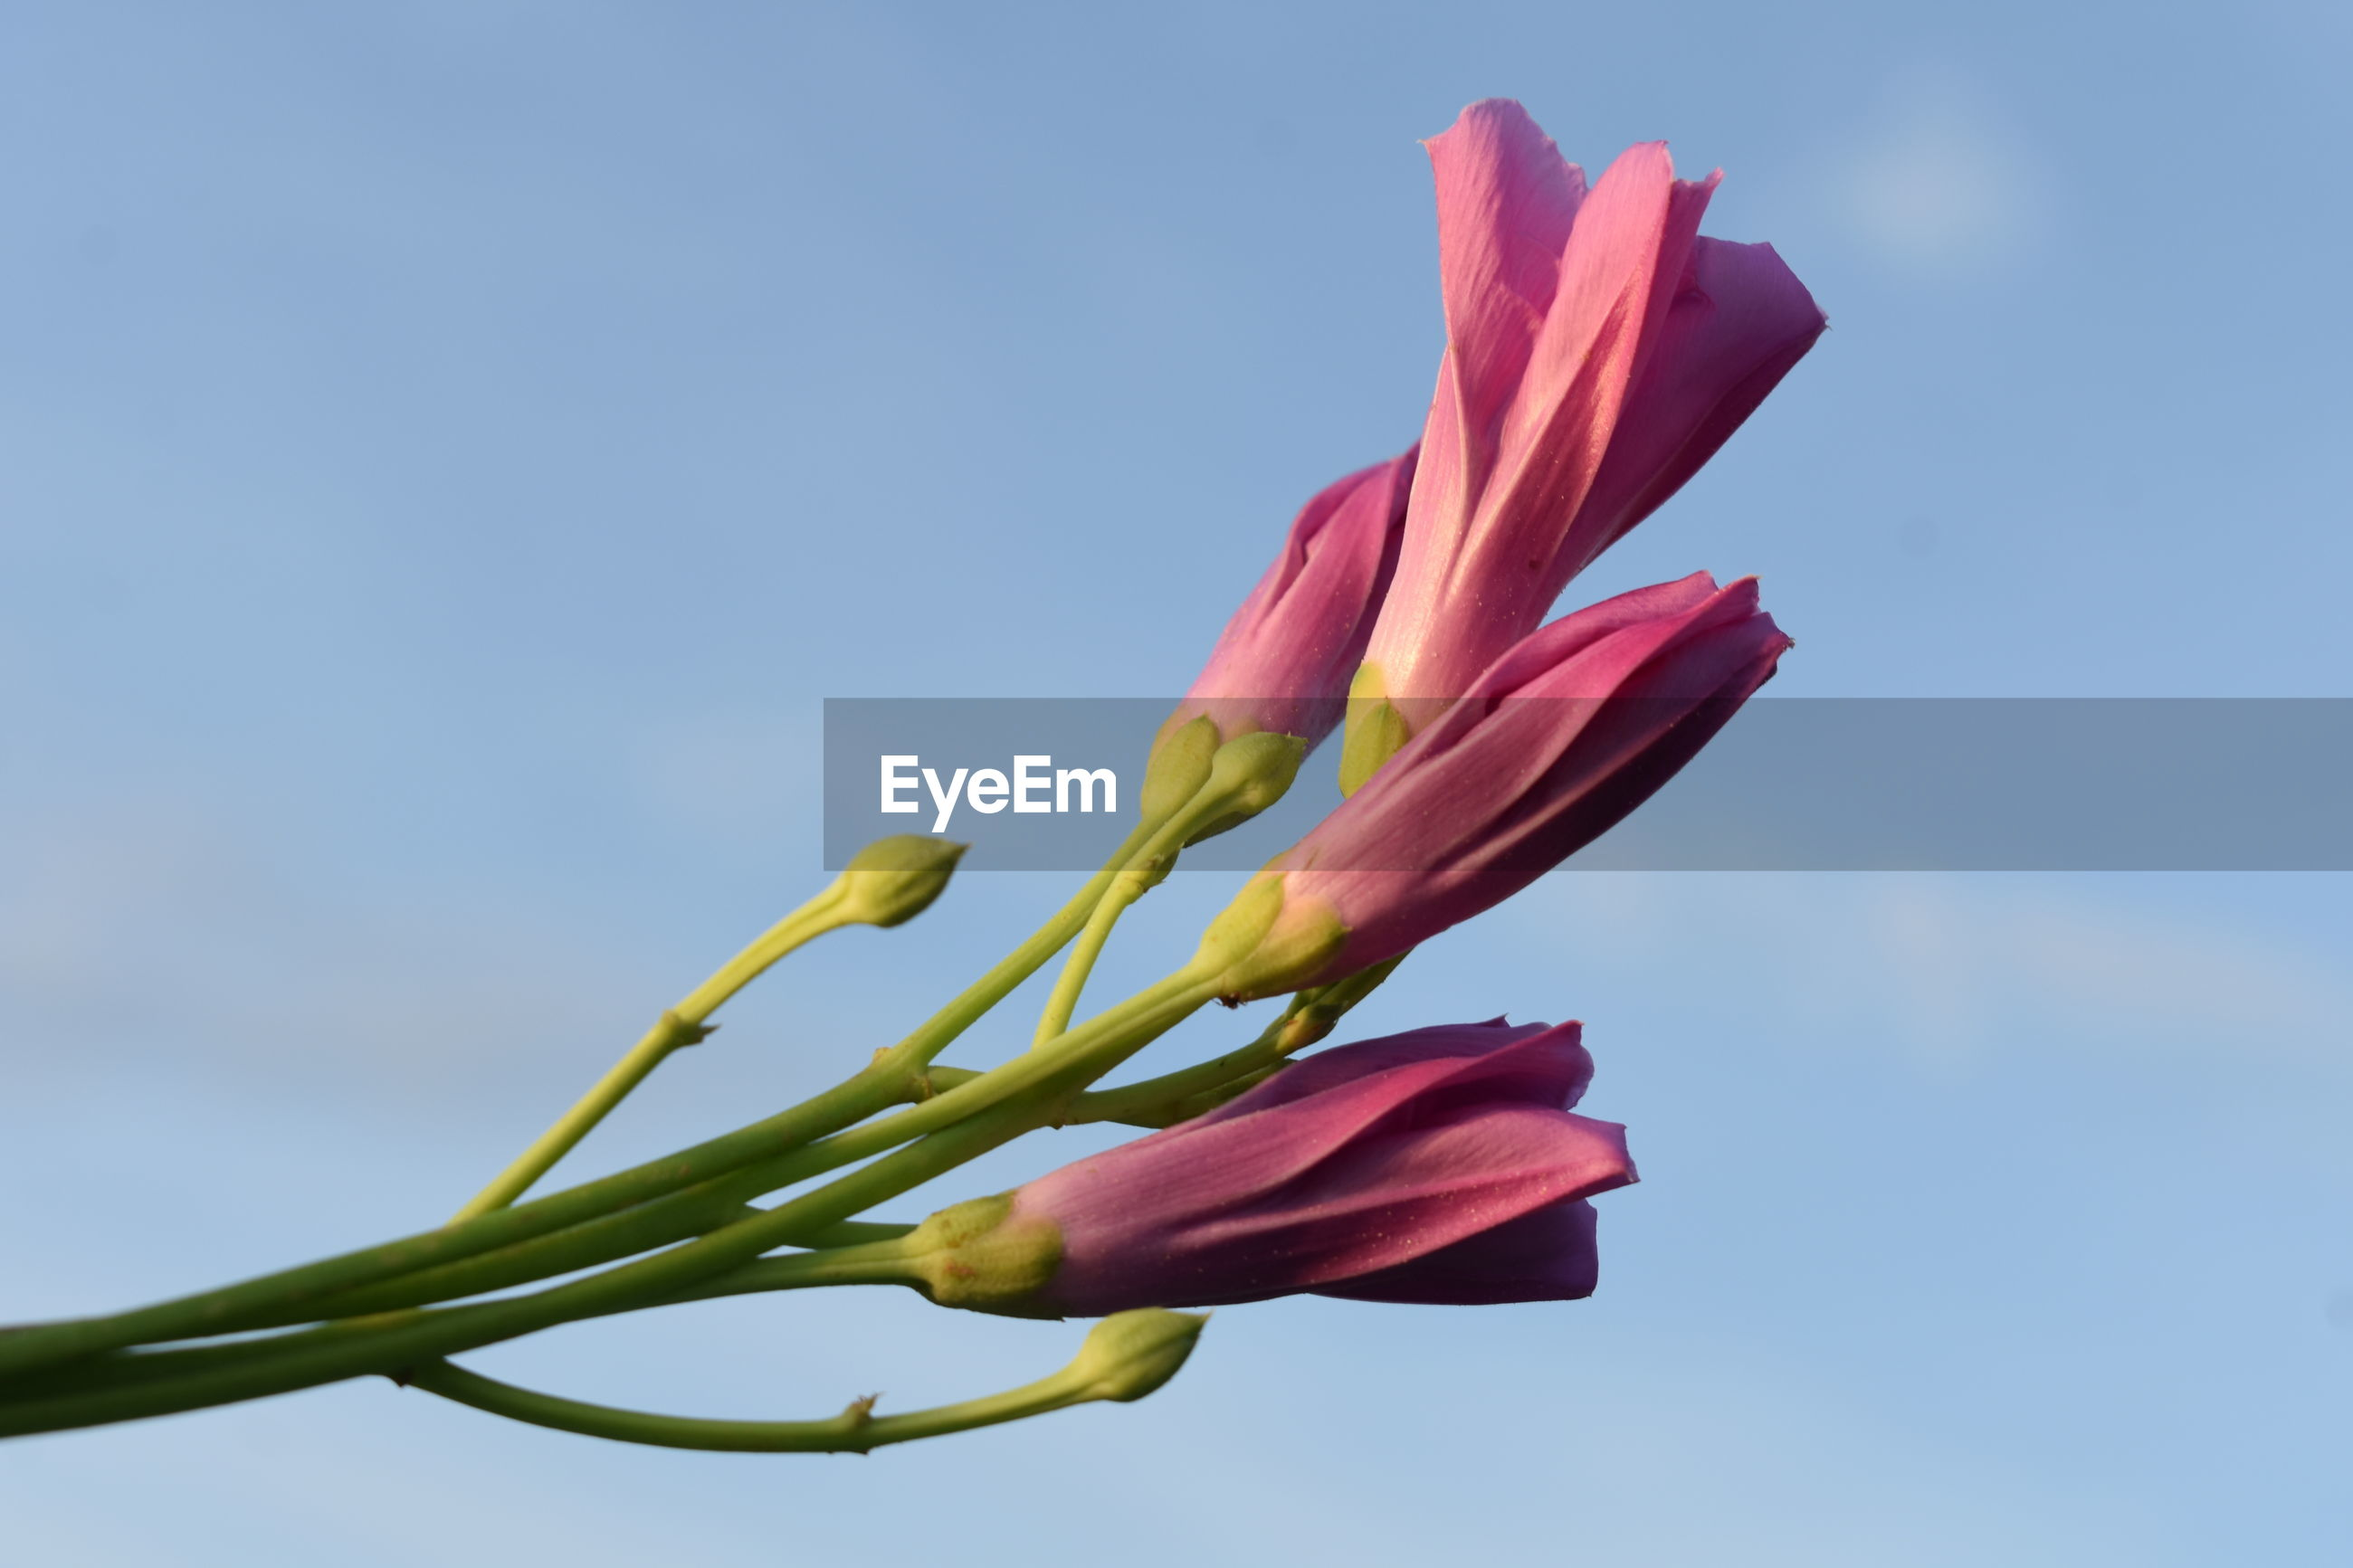 CLOSE-UP OF PINK FLOWER PLANT AGAINST SKY